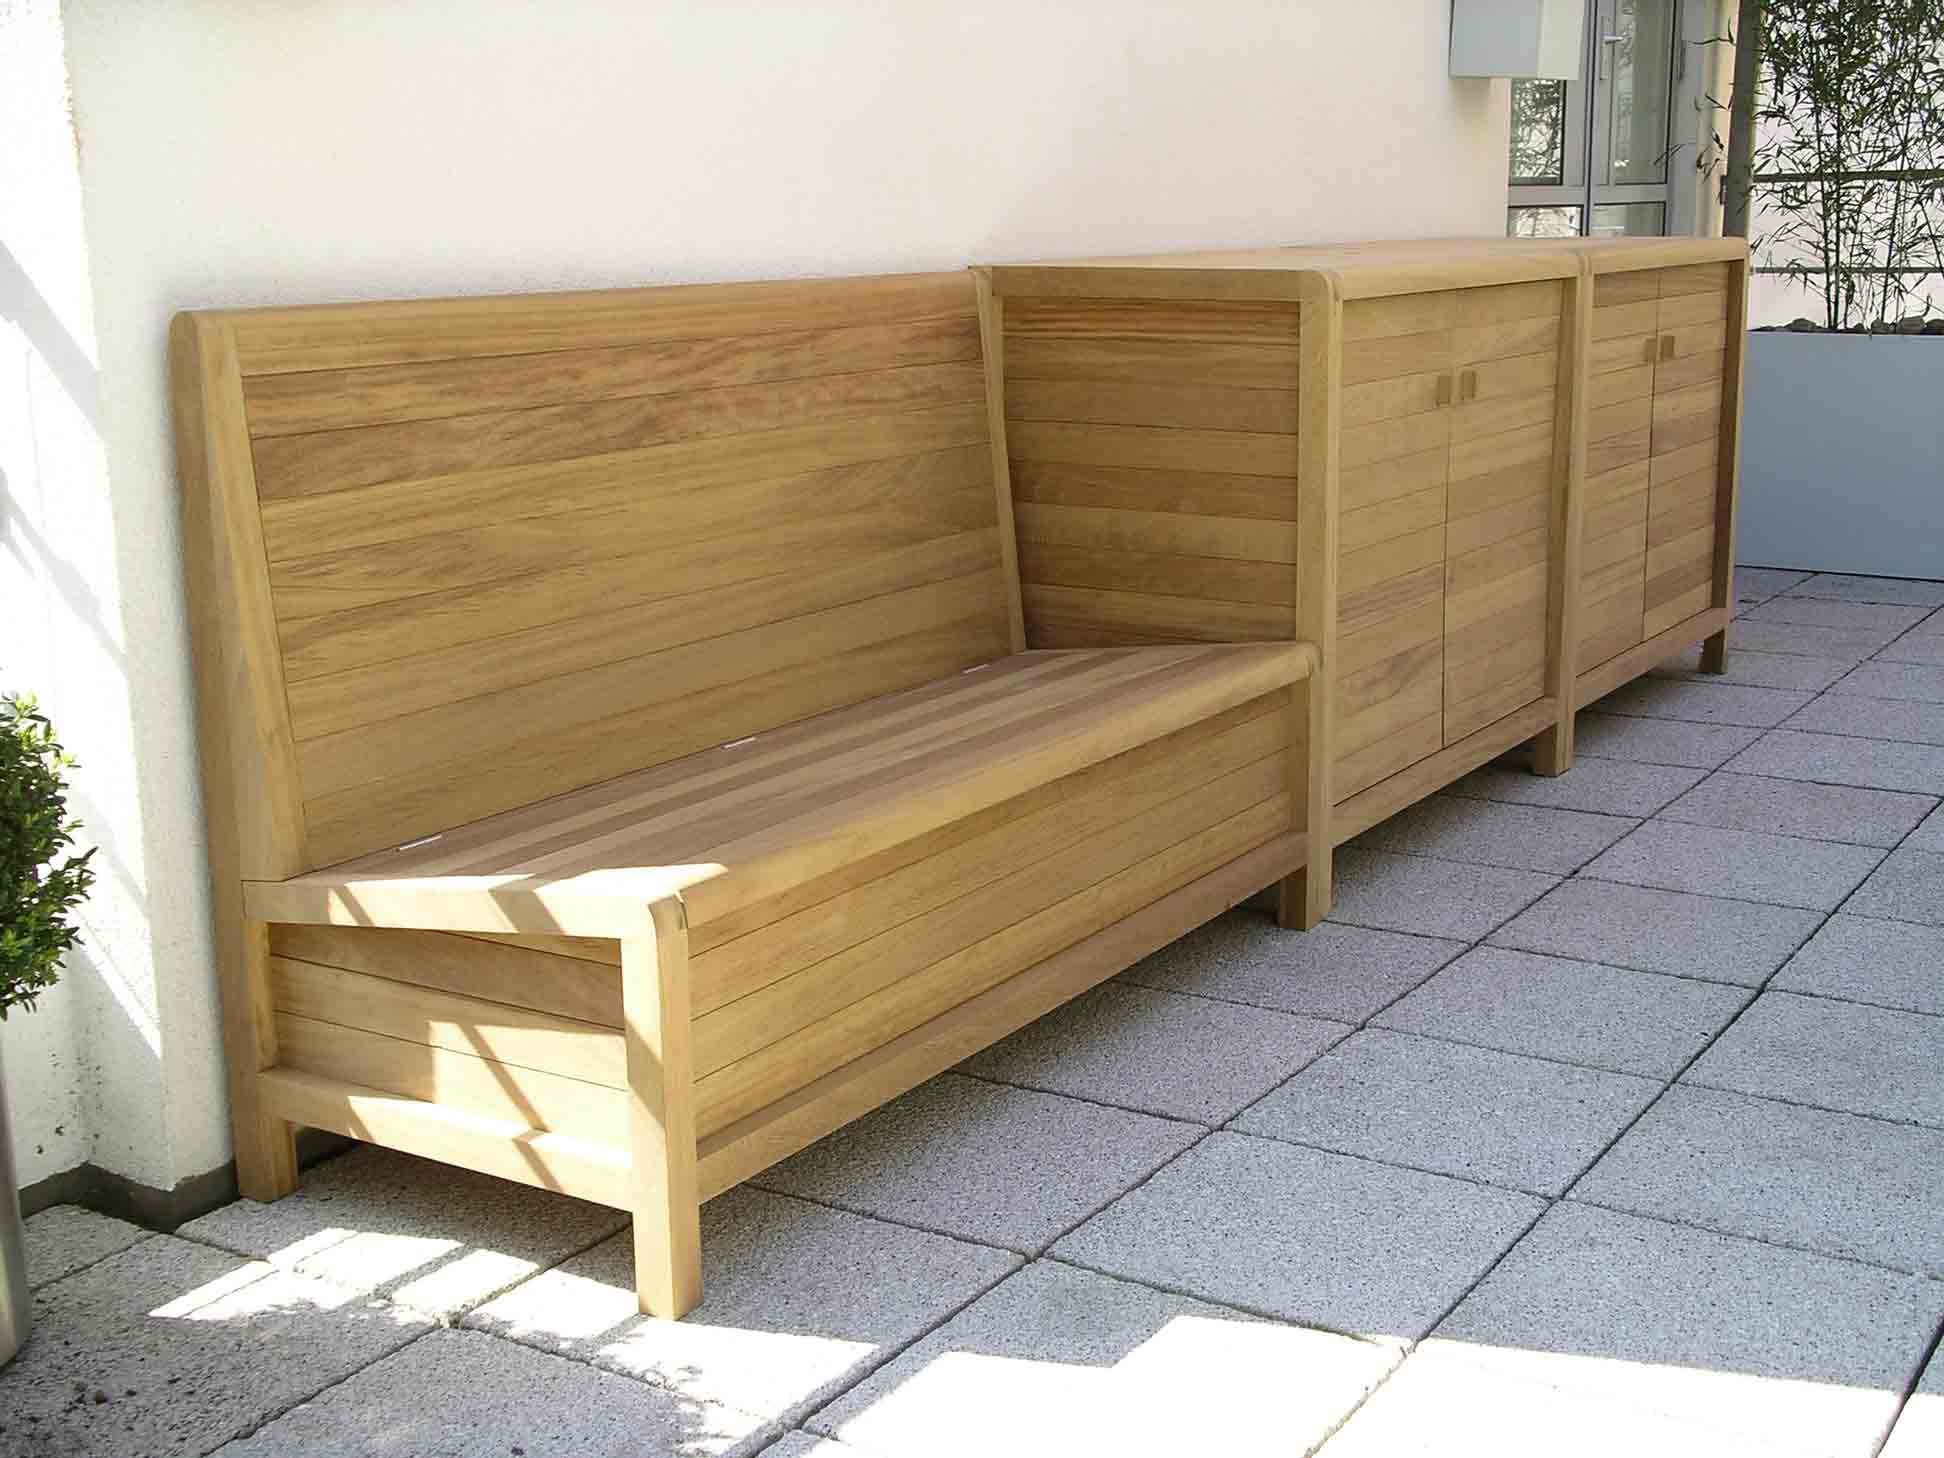 iroko cabinet made for exterior setting